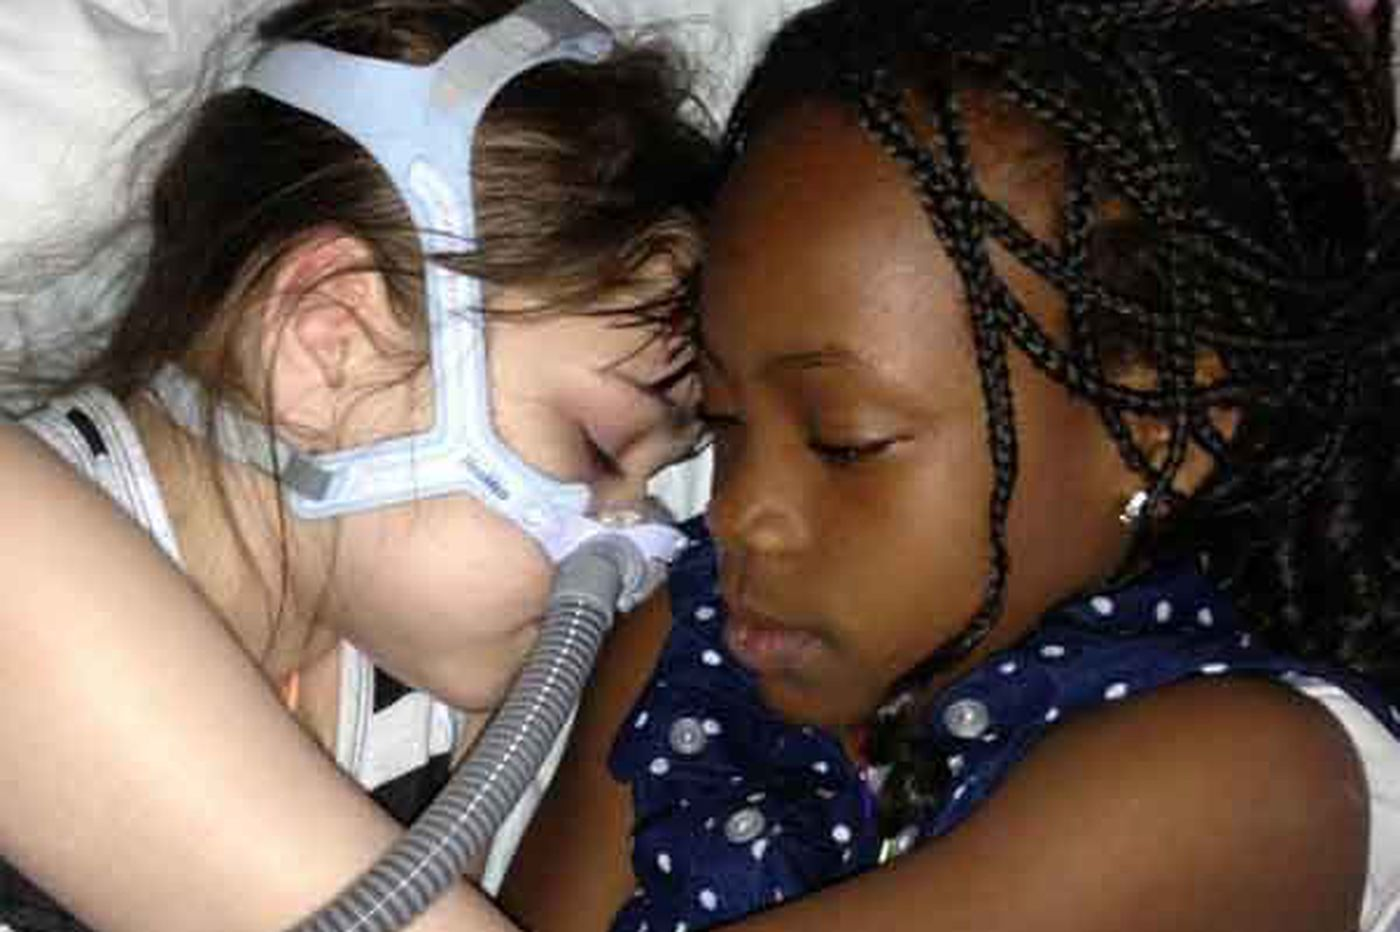 Phila. family fights lung-donor rule for dying girl